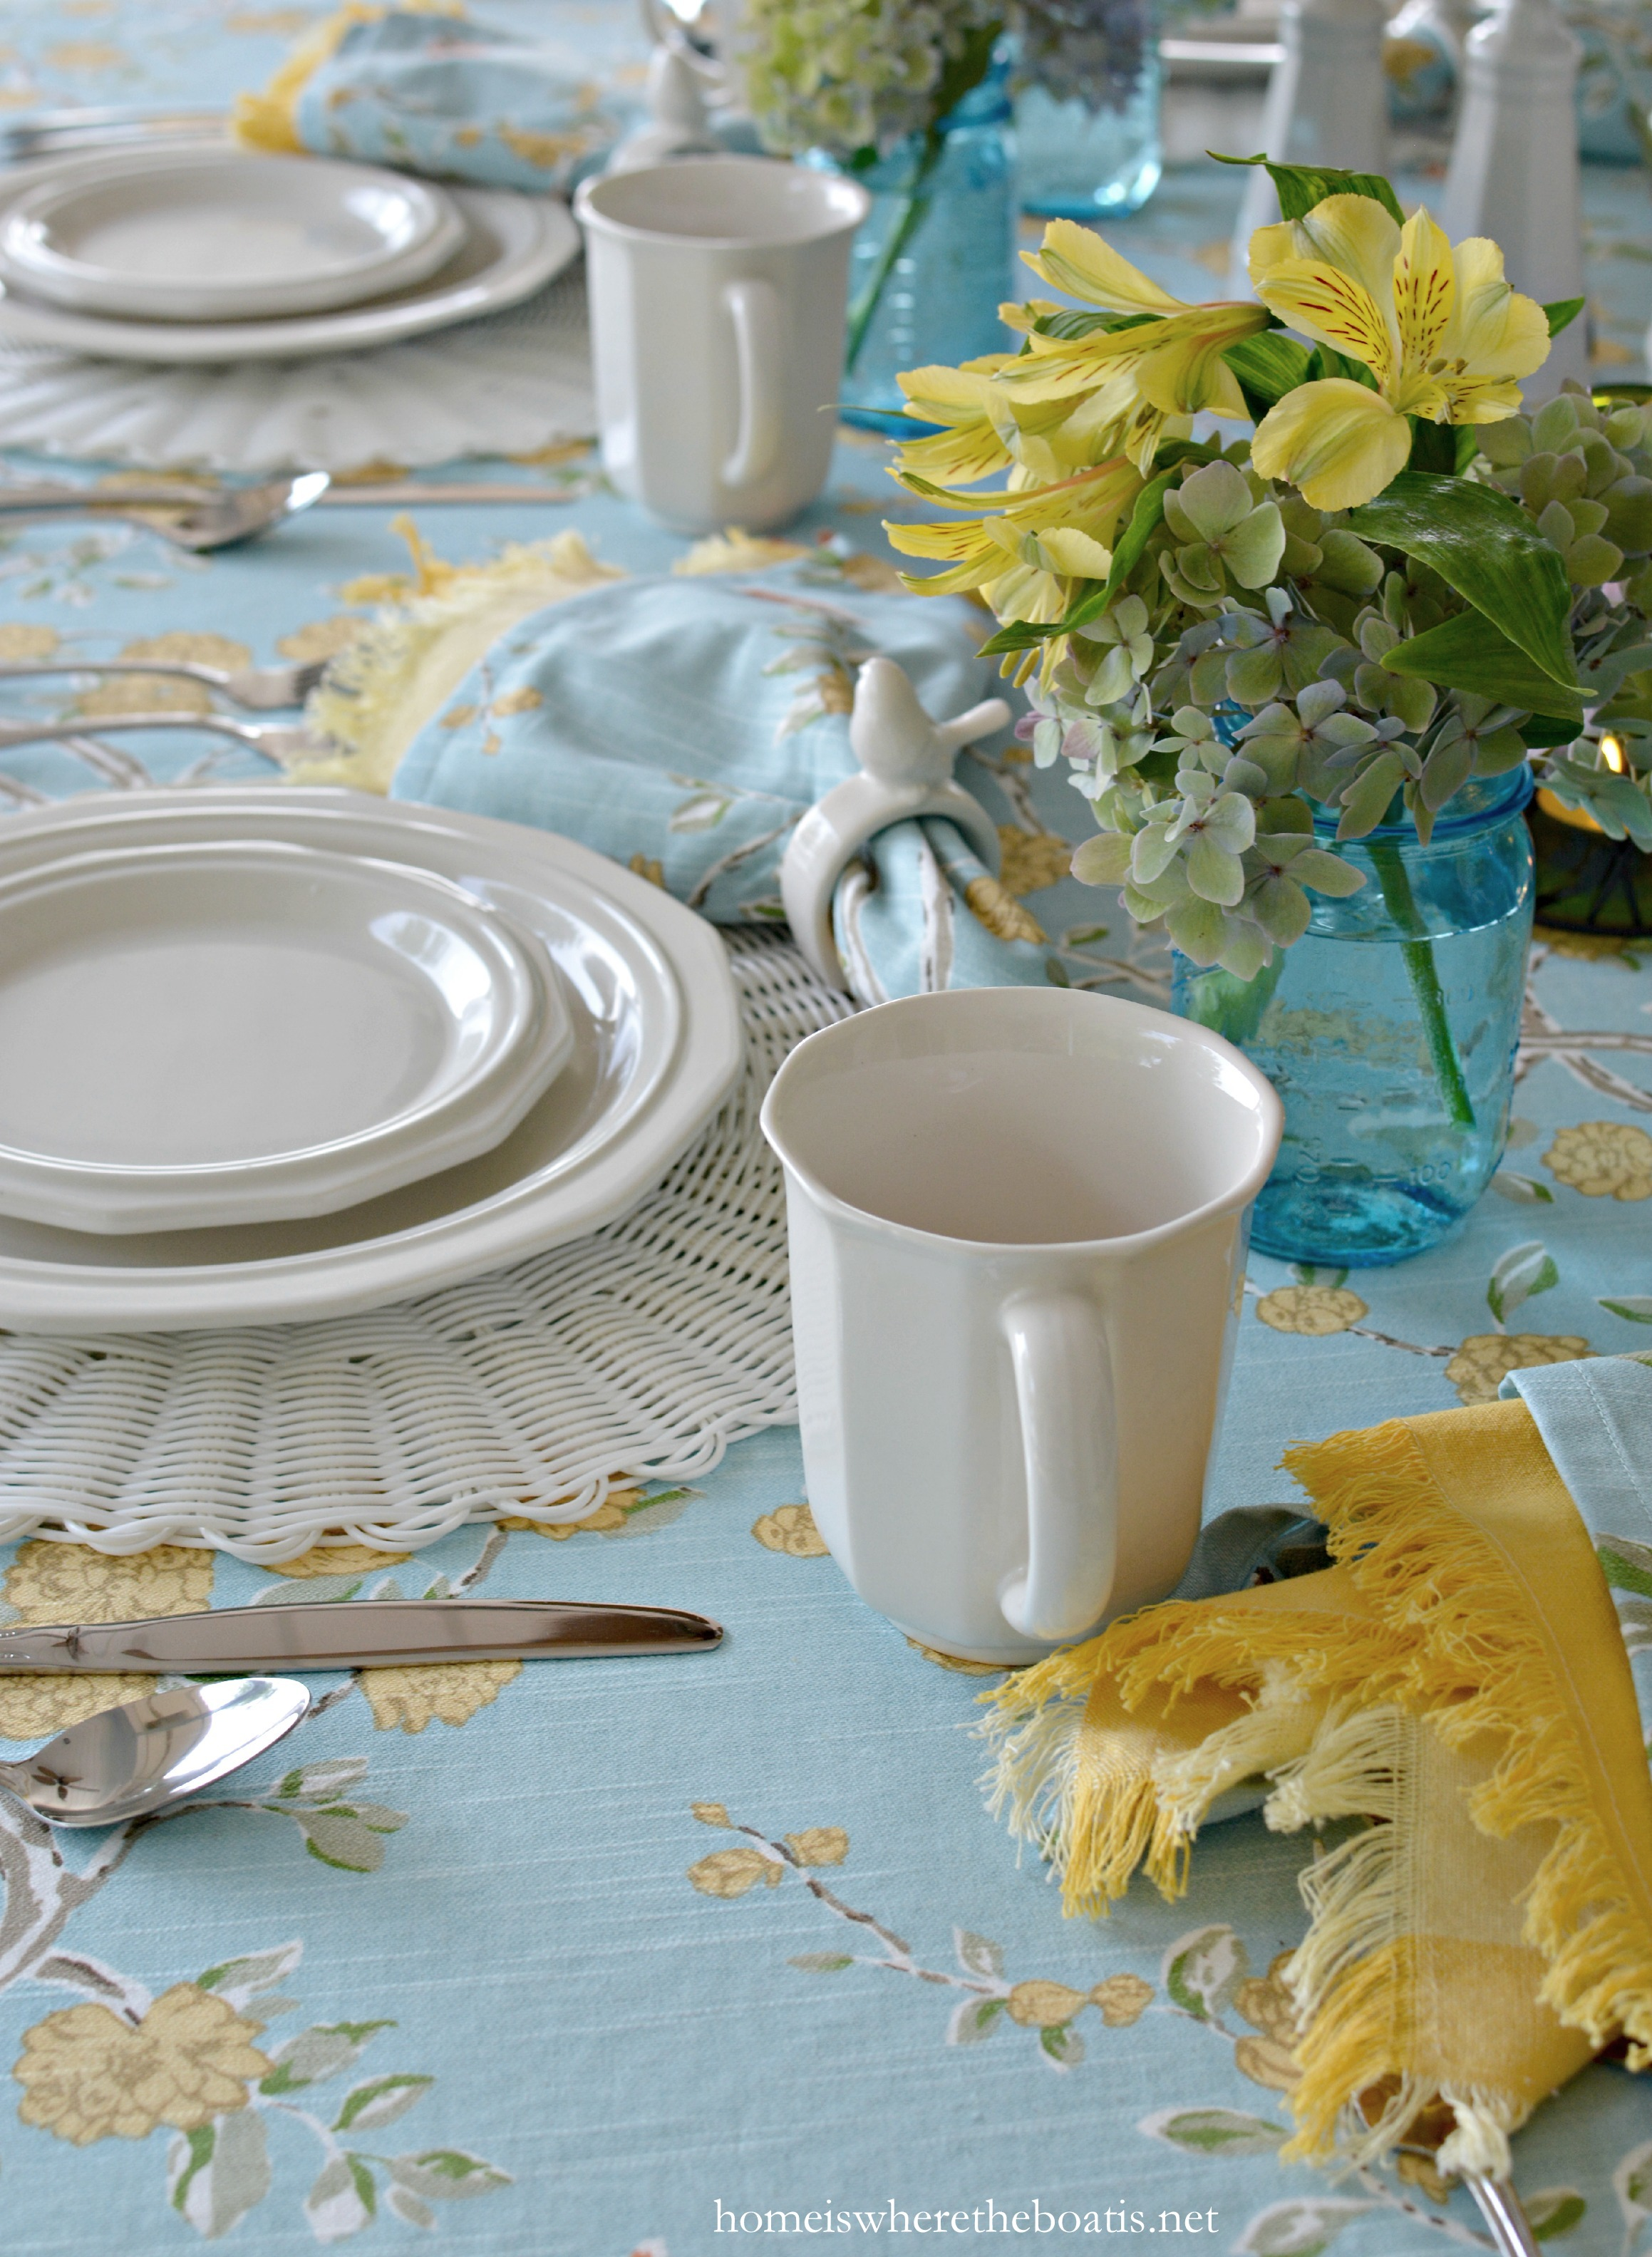 I\u0027m at the table with birds blooms and Pfaltzgraff Heritage Dinnerware. & At the Table: Birds Blooms and Pfaltzgraff Heritage Dinnerware ...